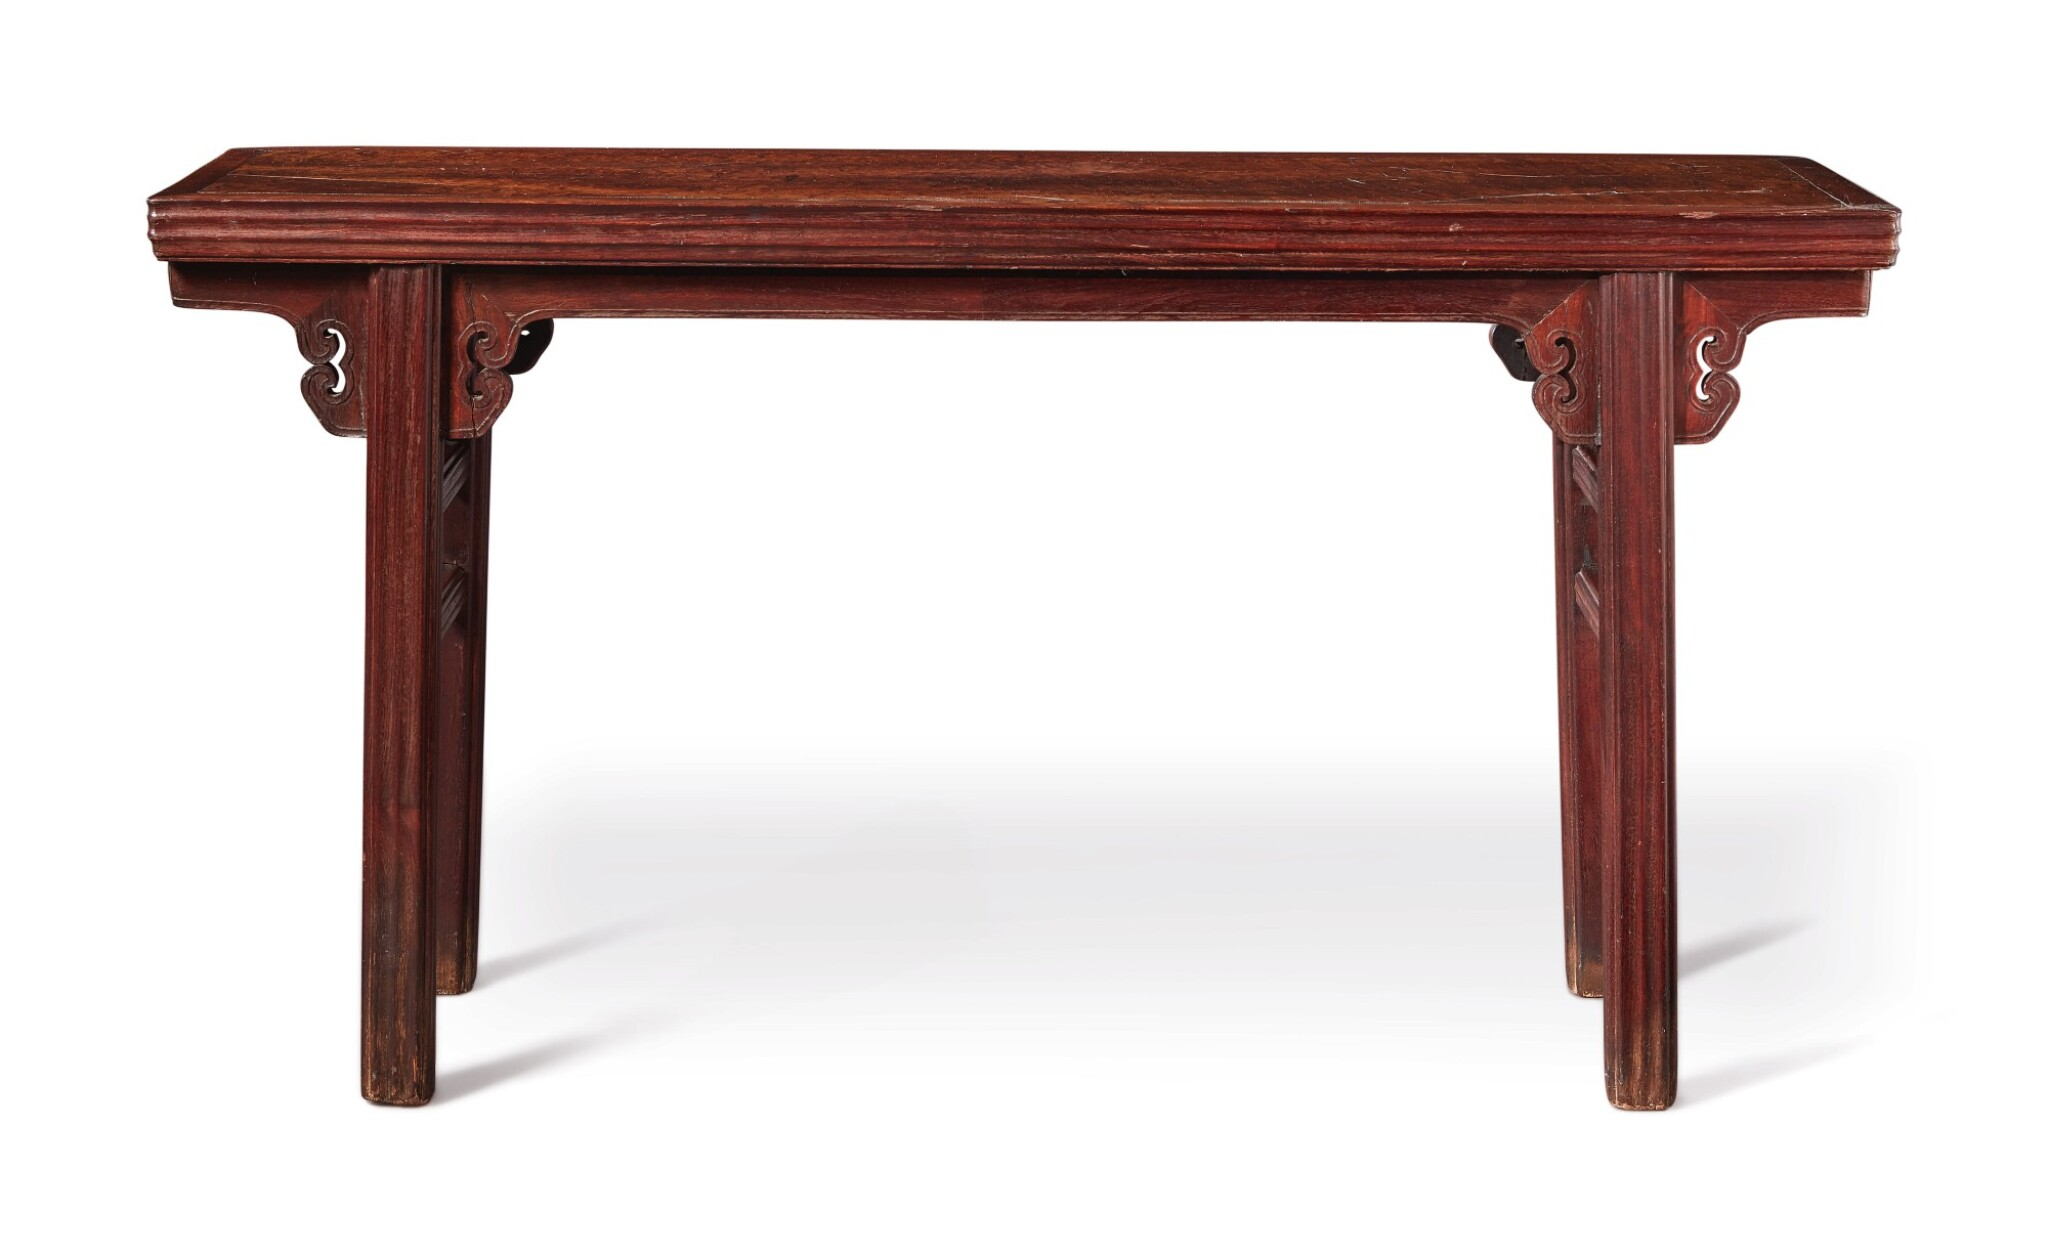 View 1 of Lot 1040.  A BURLWOOD INSET 'TIELIMU' RECESSED-LEG TABLE (PINGTOUAN), QING DYNASTY, 18TH / 19TH CENTURY.